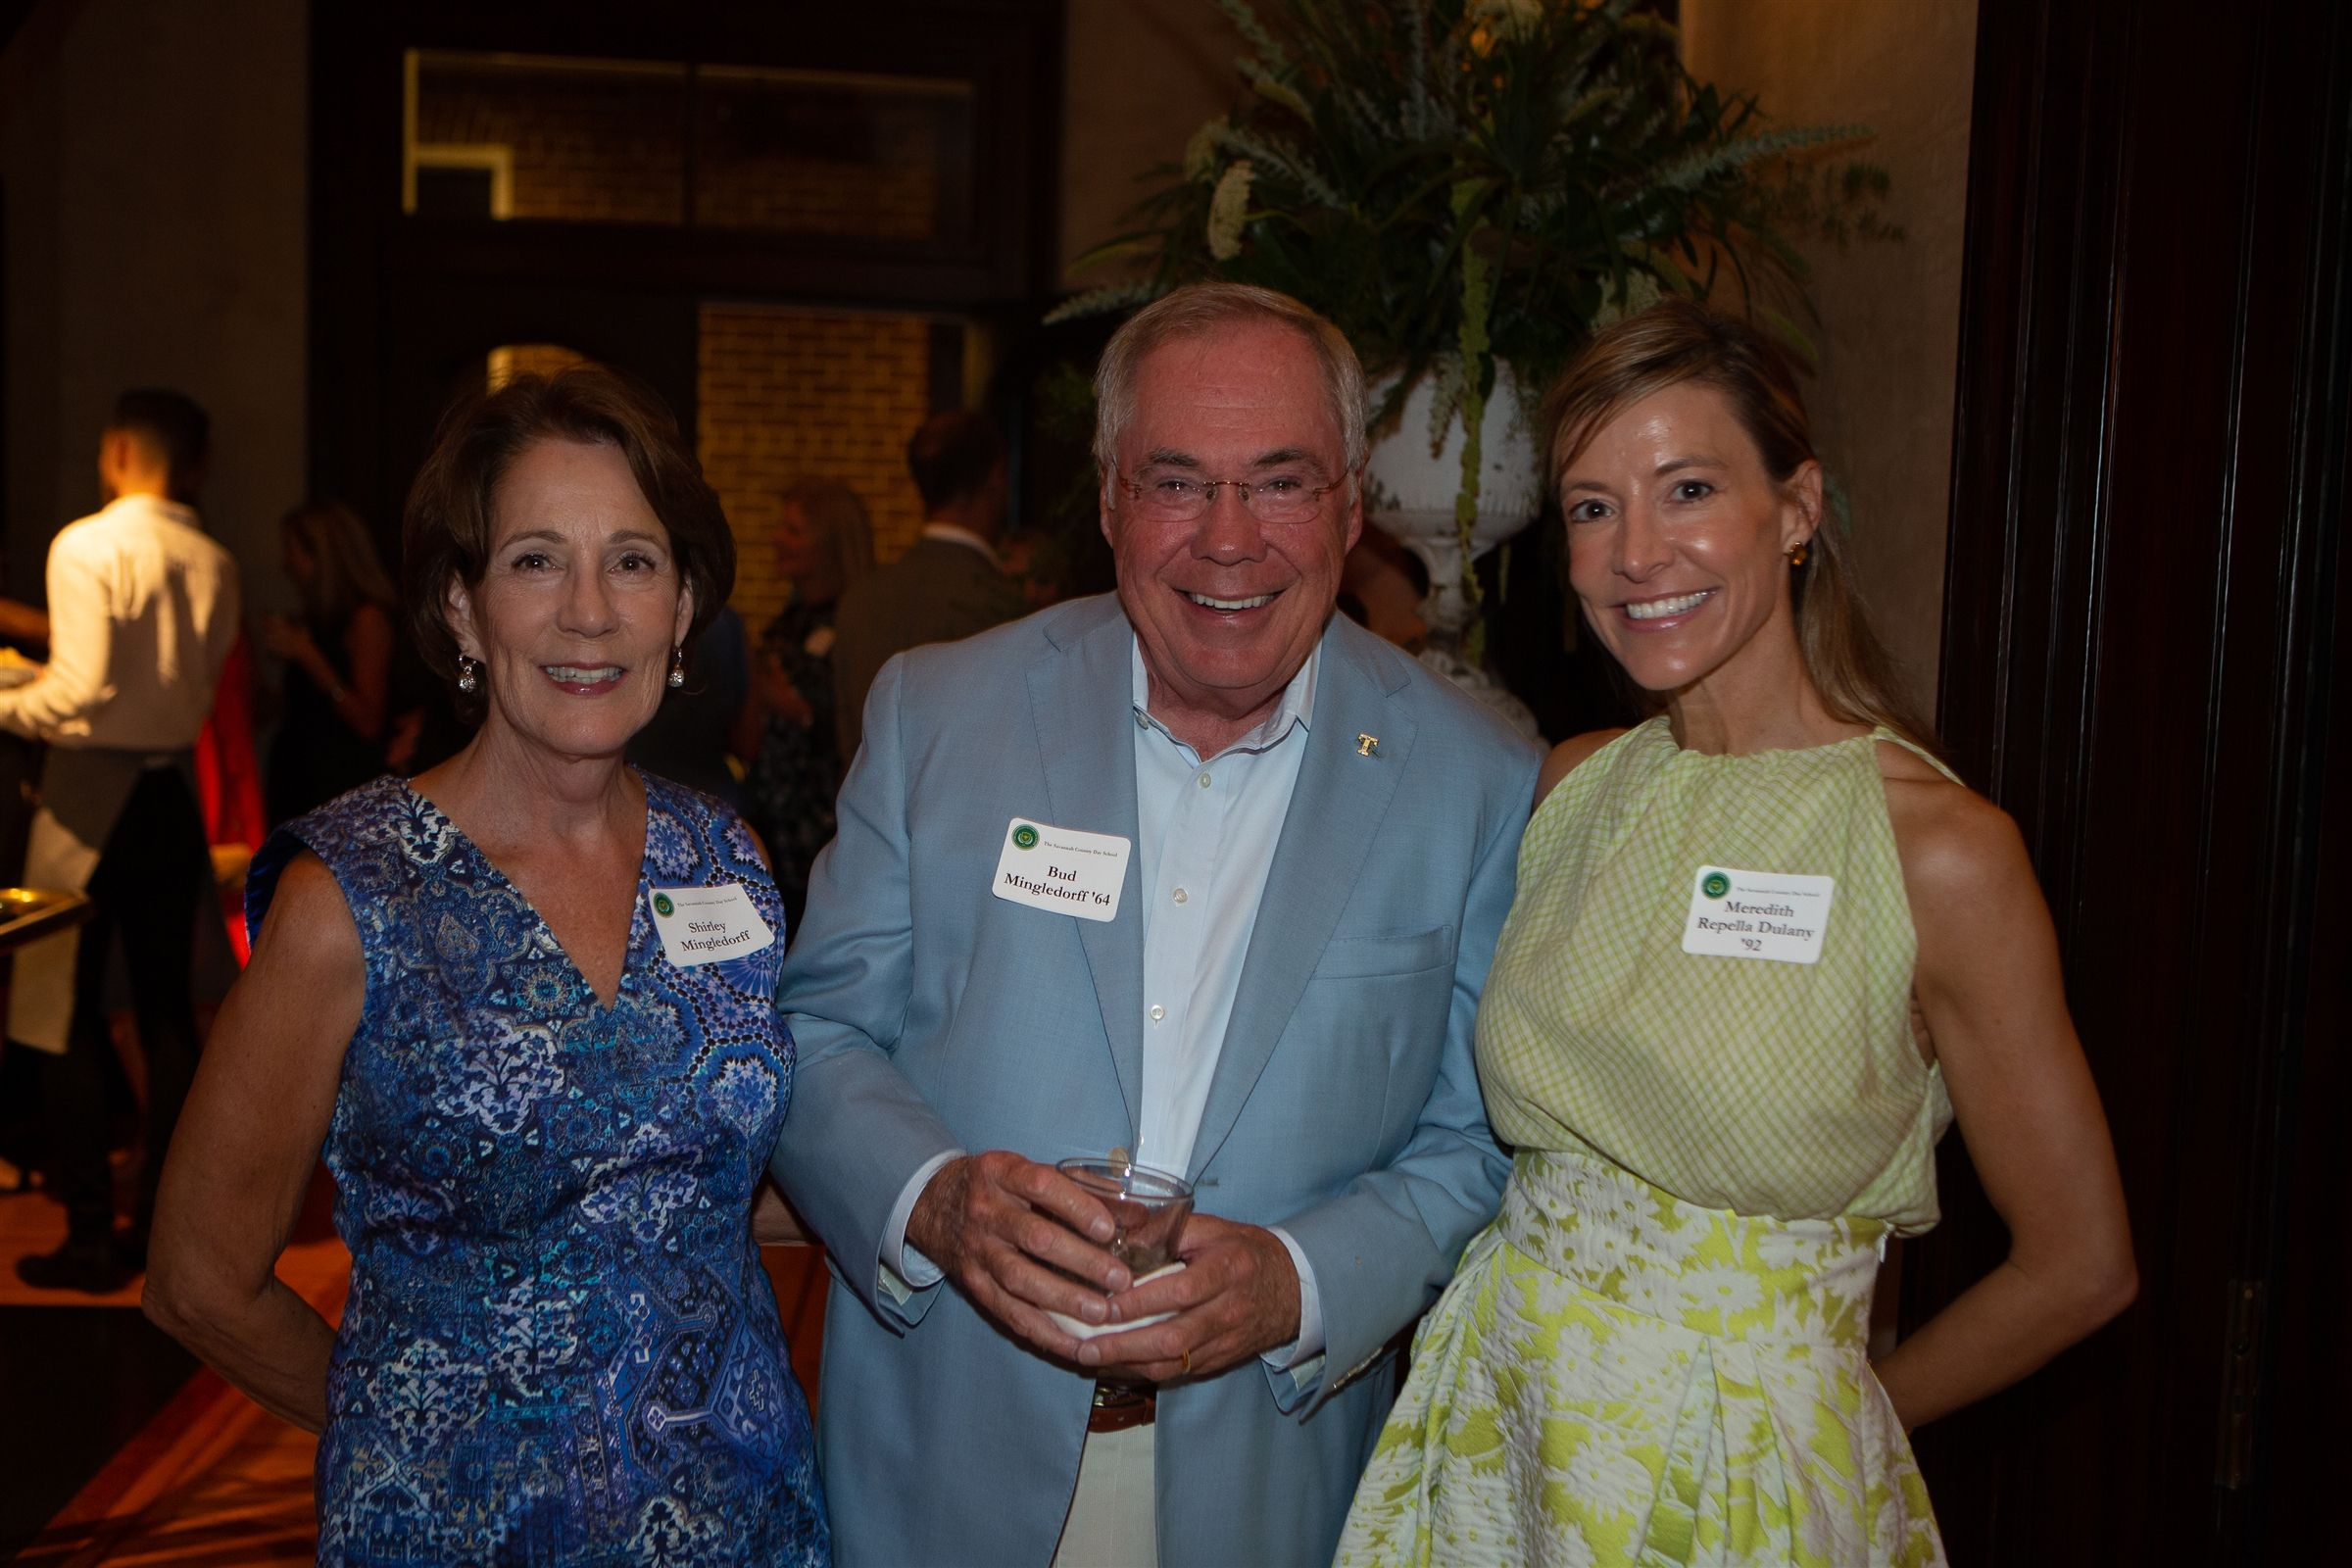 Shirley & Bud Mingledorff '64 and Meredith Repella Dulany '92 at the 2019 Green & Gold Dinner